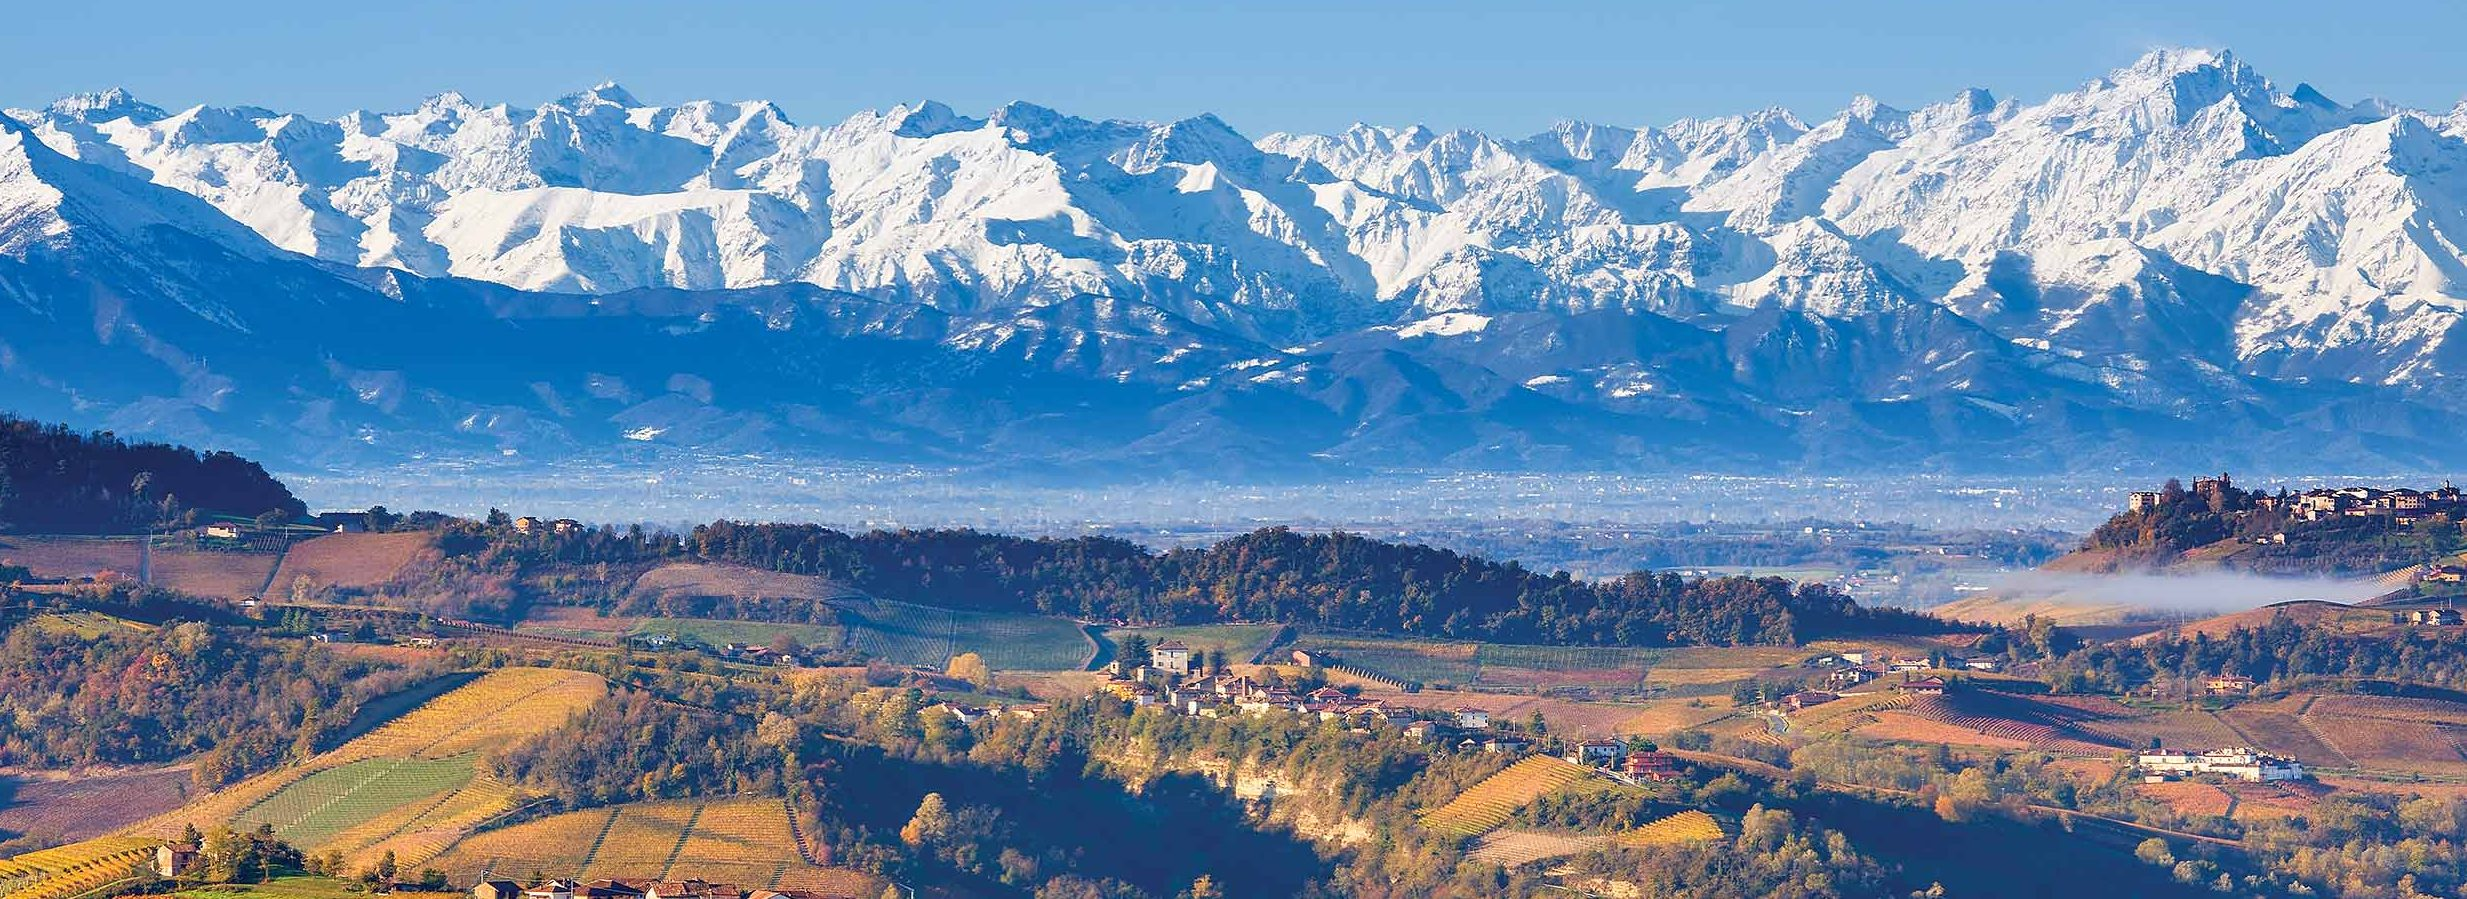 Piemonte and the Alps